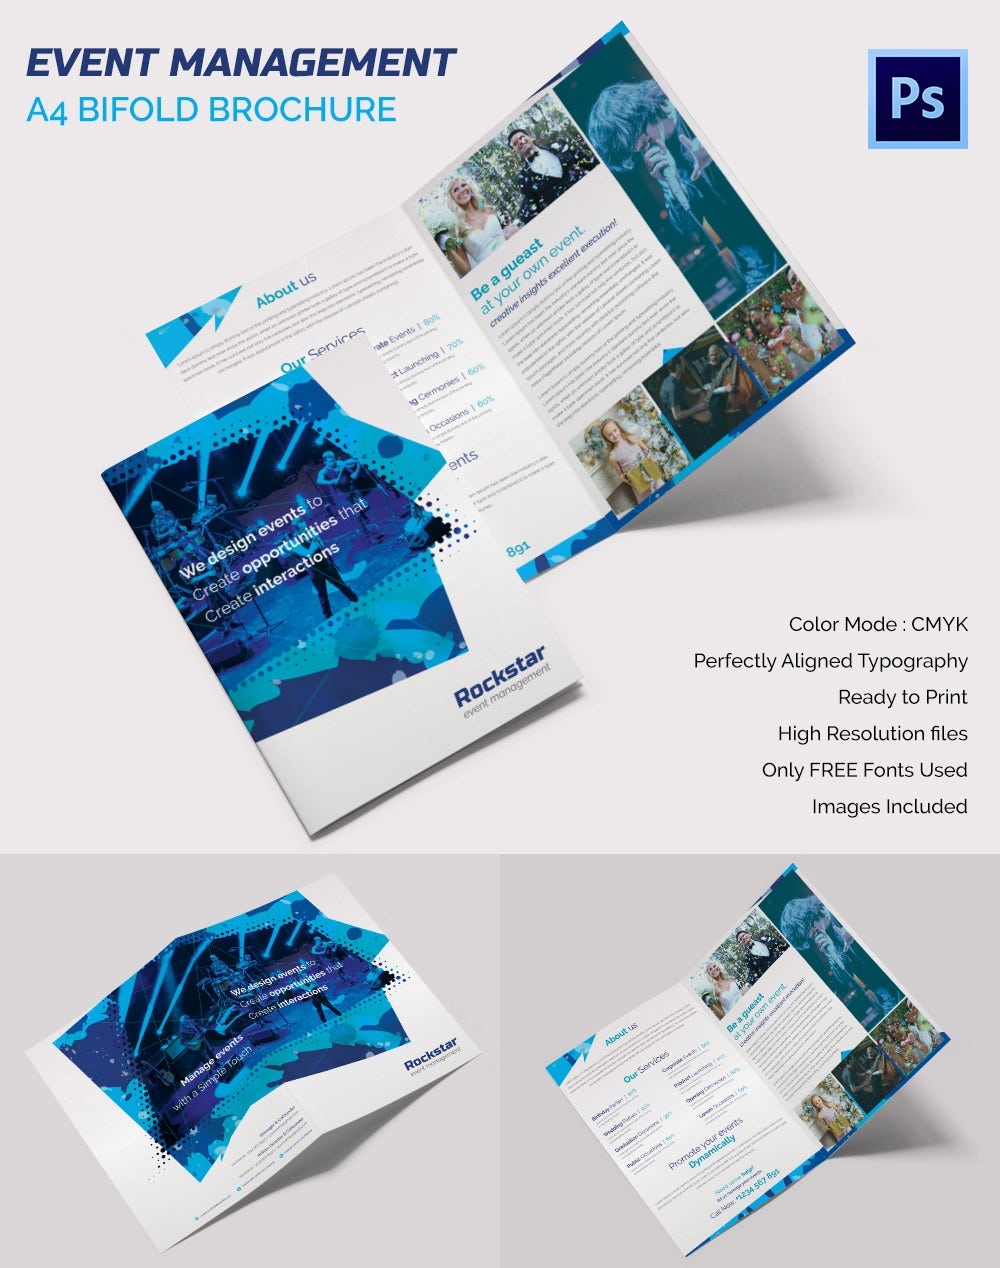 free online brochure templates - 16 event brochure templates psd designs free